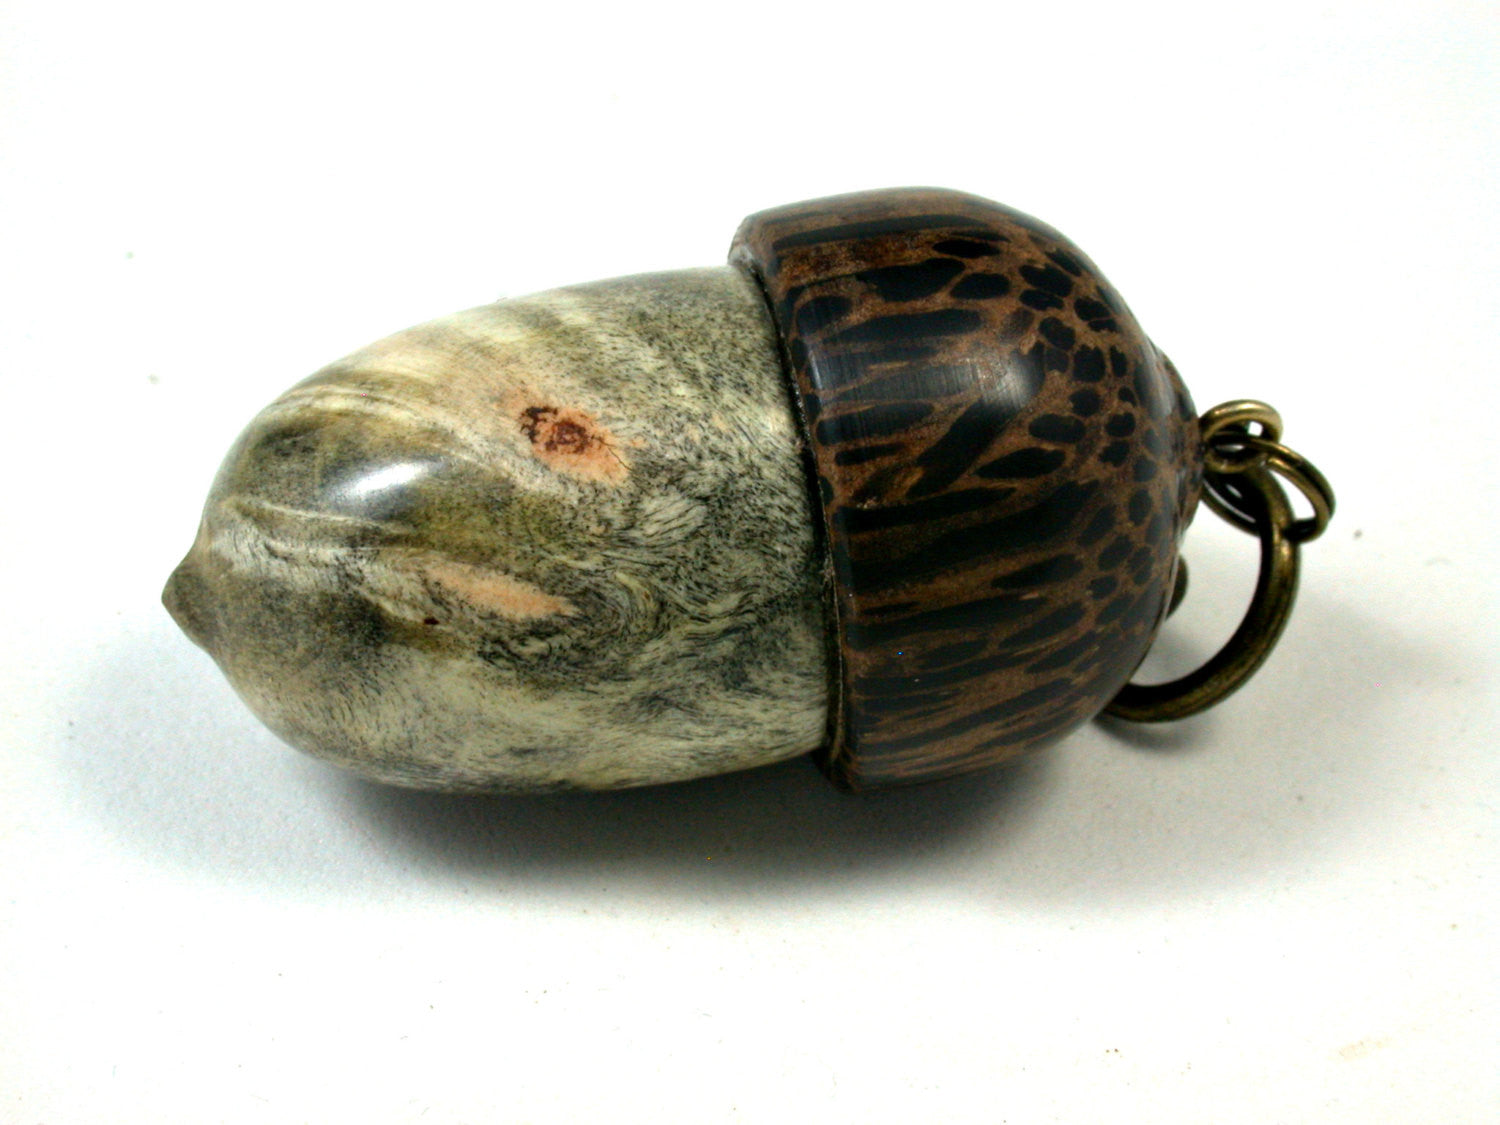 LV-1645 Buckeye Burl & Black Palm Acorn Key Fob, Pill Holder, Secret Compartment-SCREW CAP